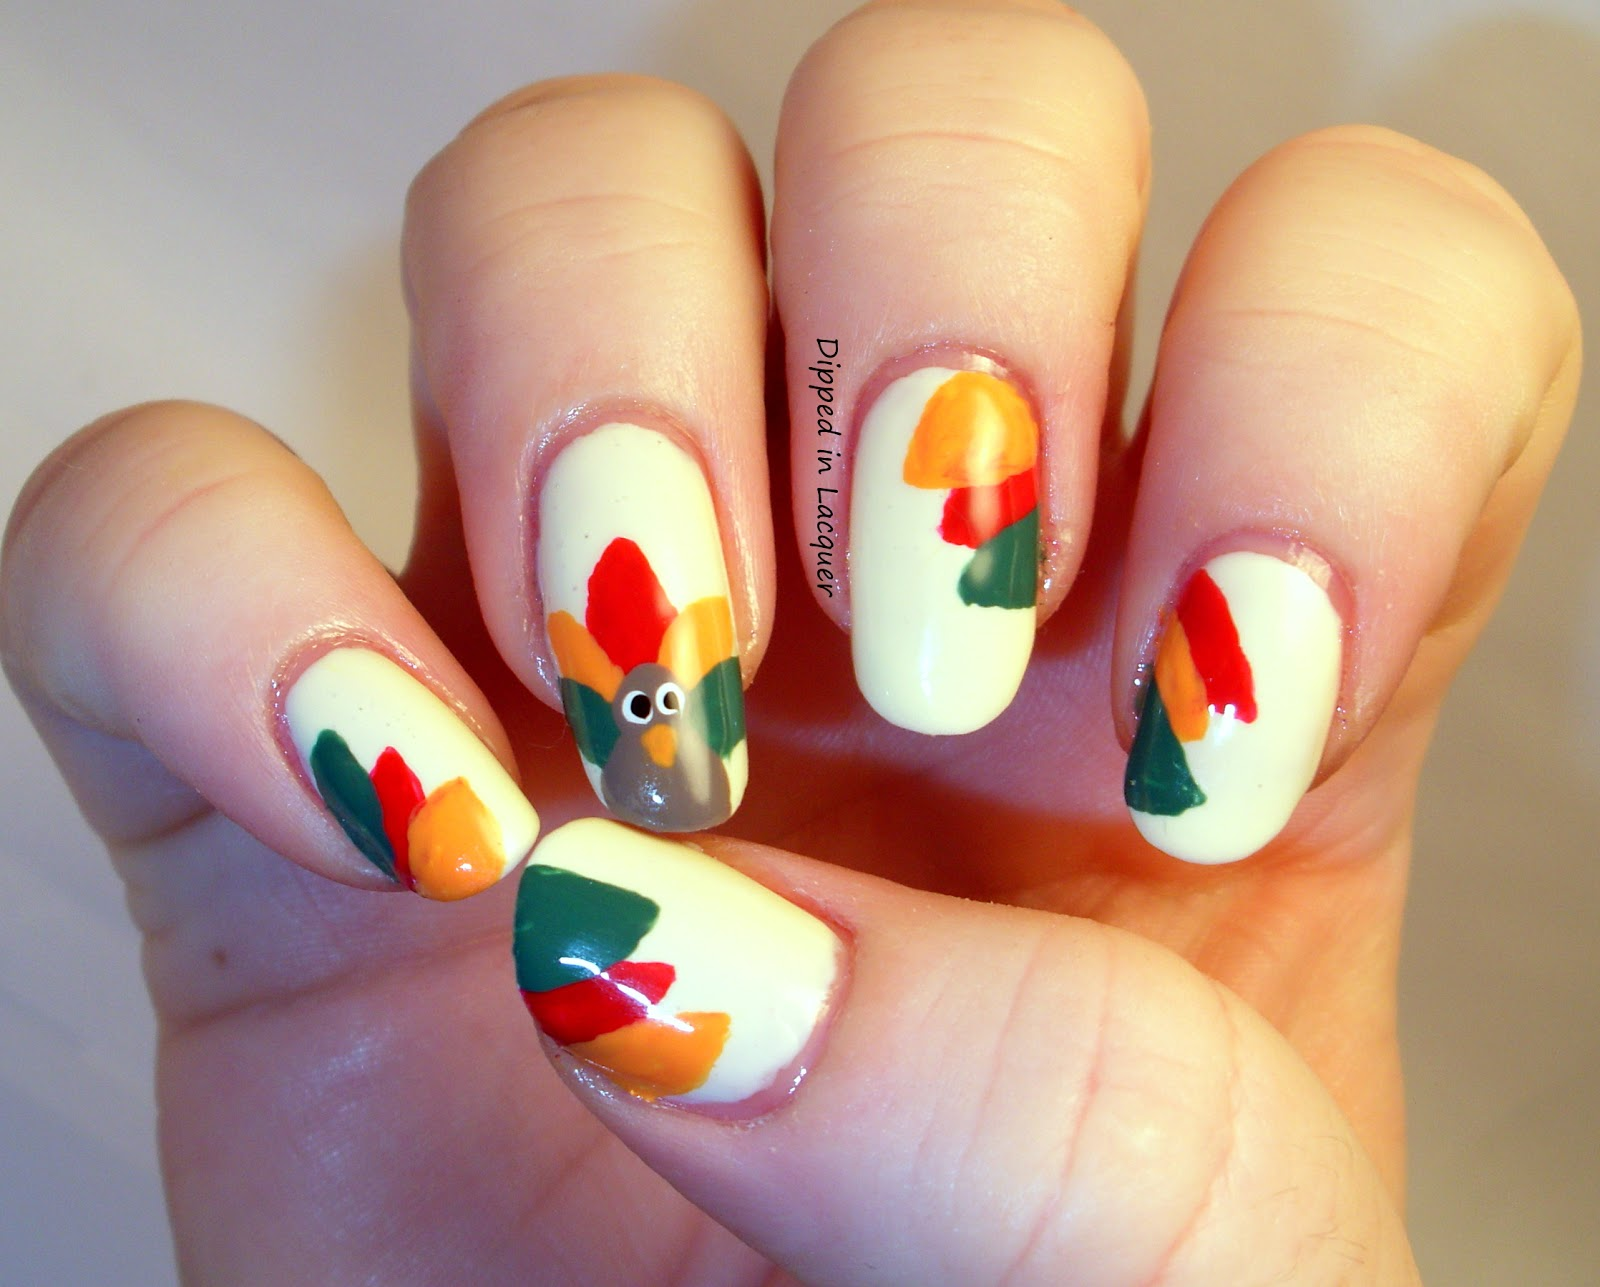 Festive thanksgiving nail designs from mane n tail fashiondivadesign prinsesfo Image collections